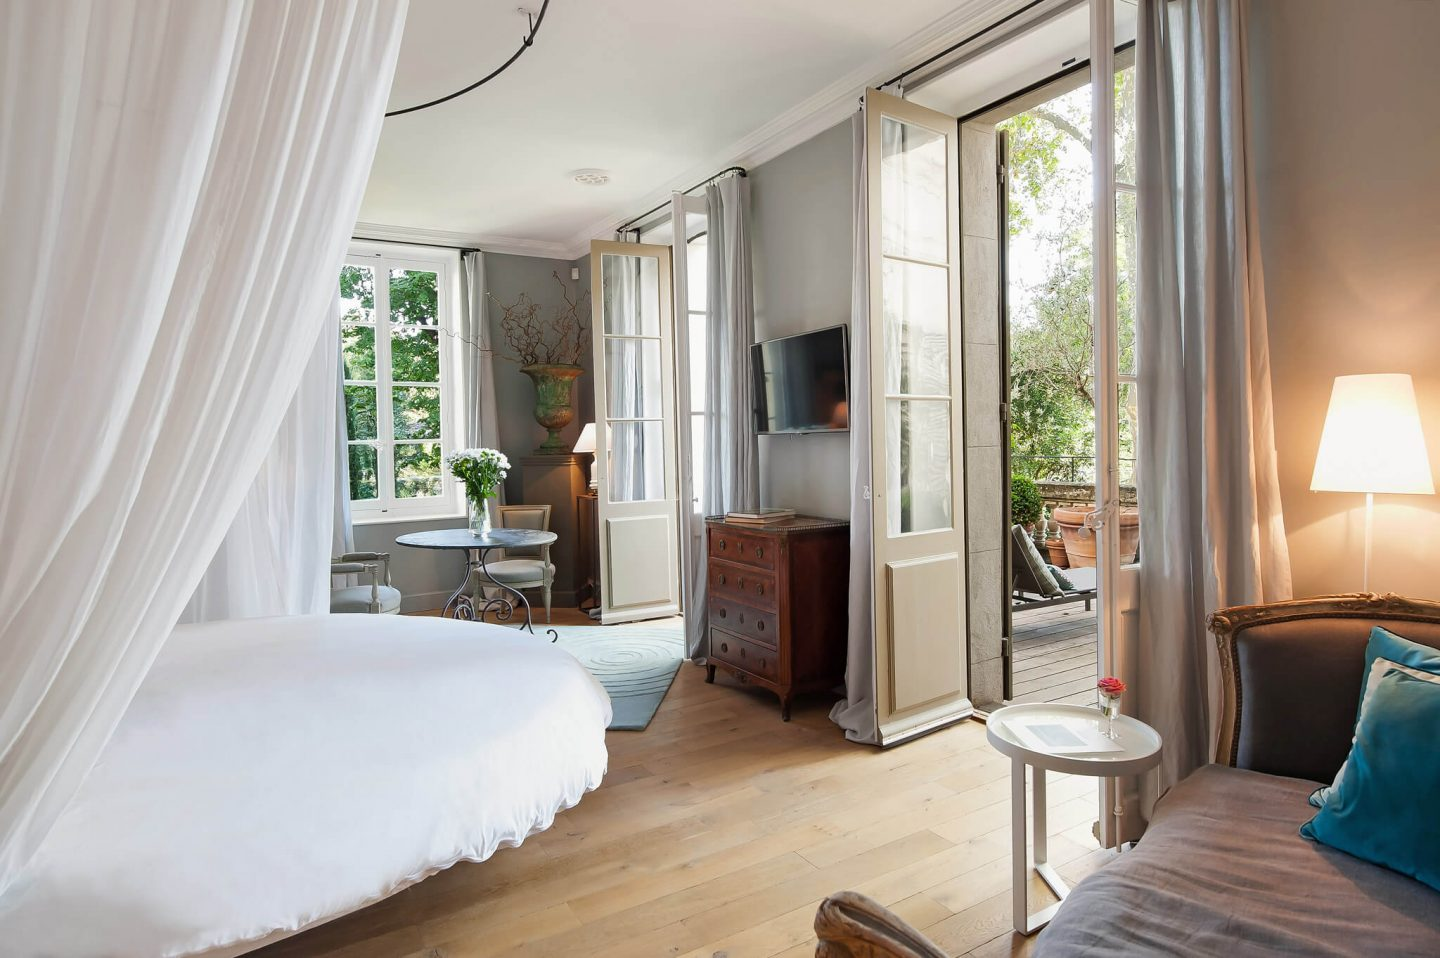 Serene French Country Style interior design inspiration. The Serenity Suite at Avignon Hôtel Particulier. Luxurious and timeless restored 19th century French chateau in the South of France. Provencal romance, traditional architecture, modern French design, unique art, and European antiques. Photo: Haven In.